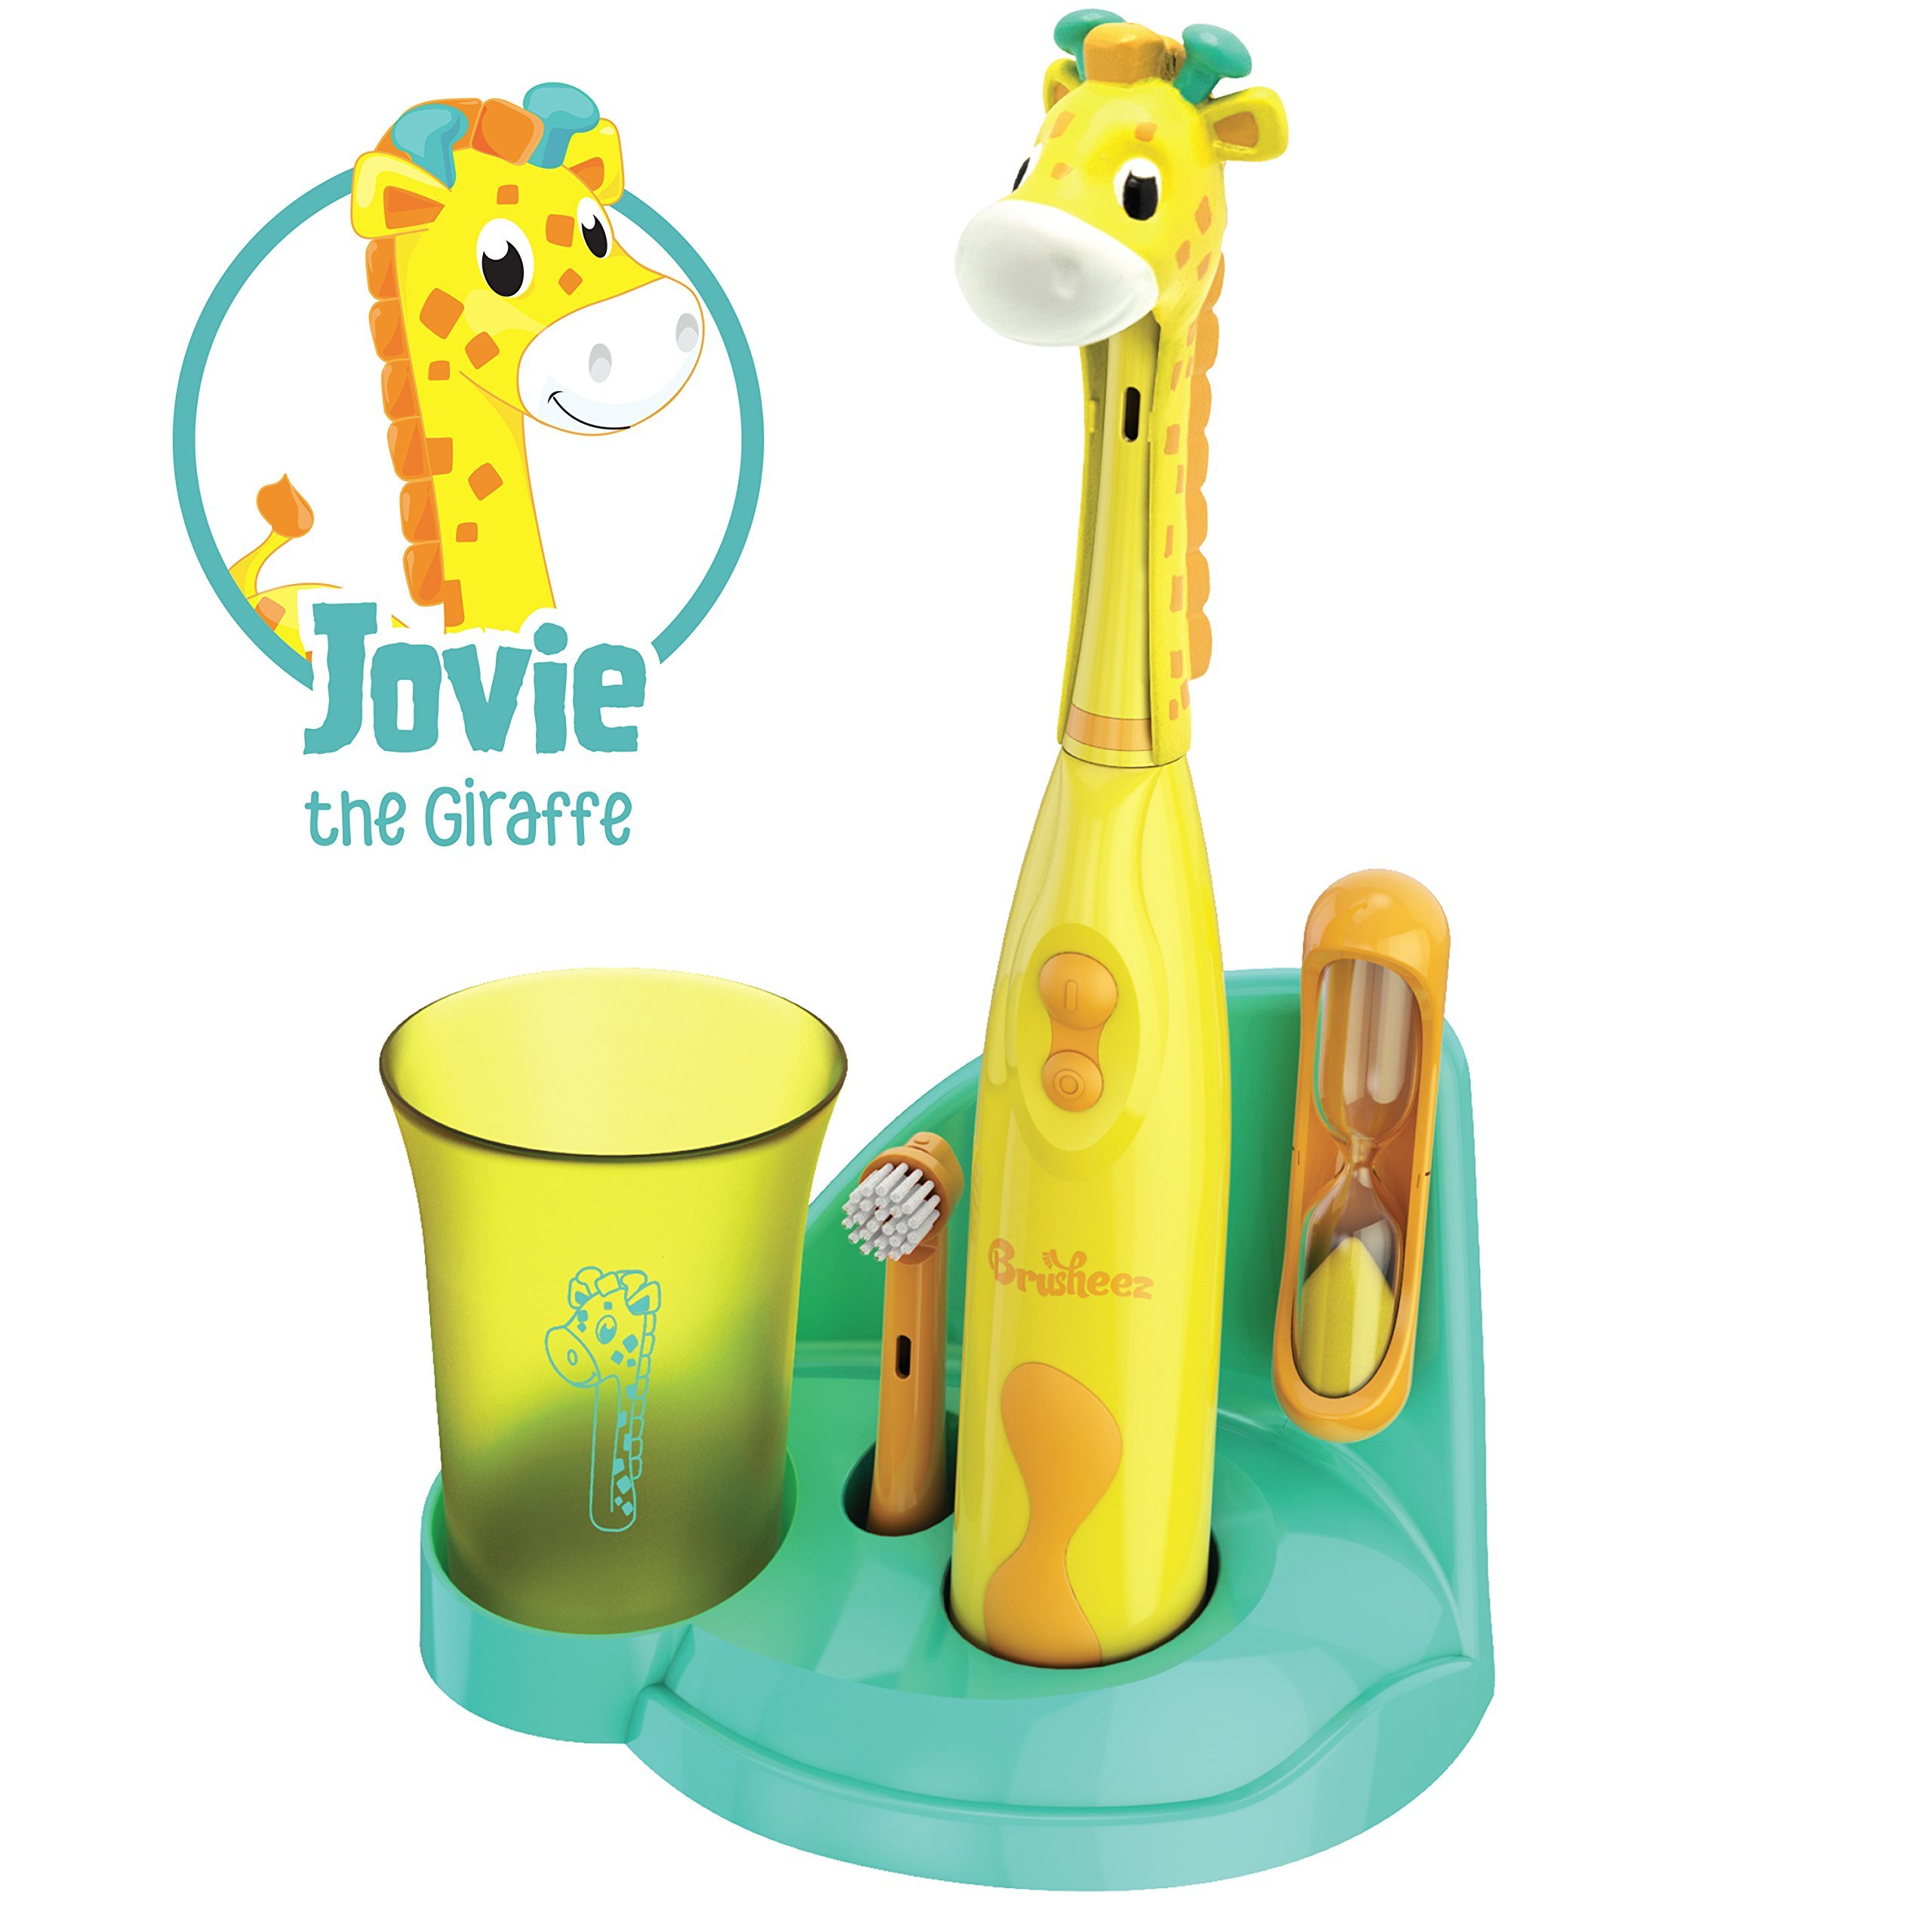 Electric toothbrush designed by celebrity for Giraffe childcare fees